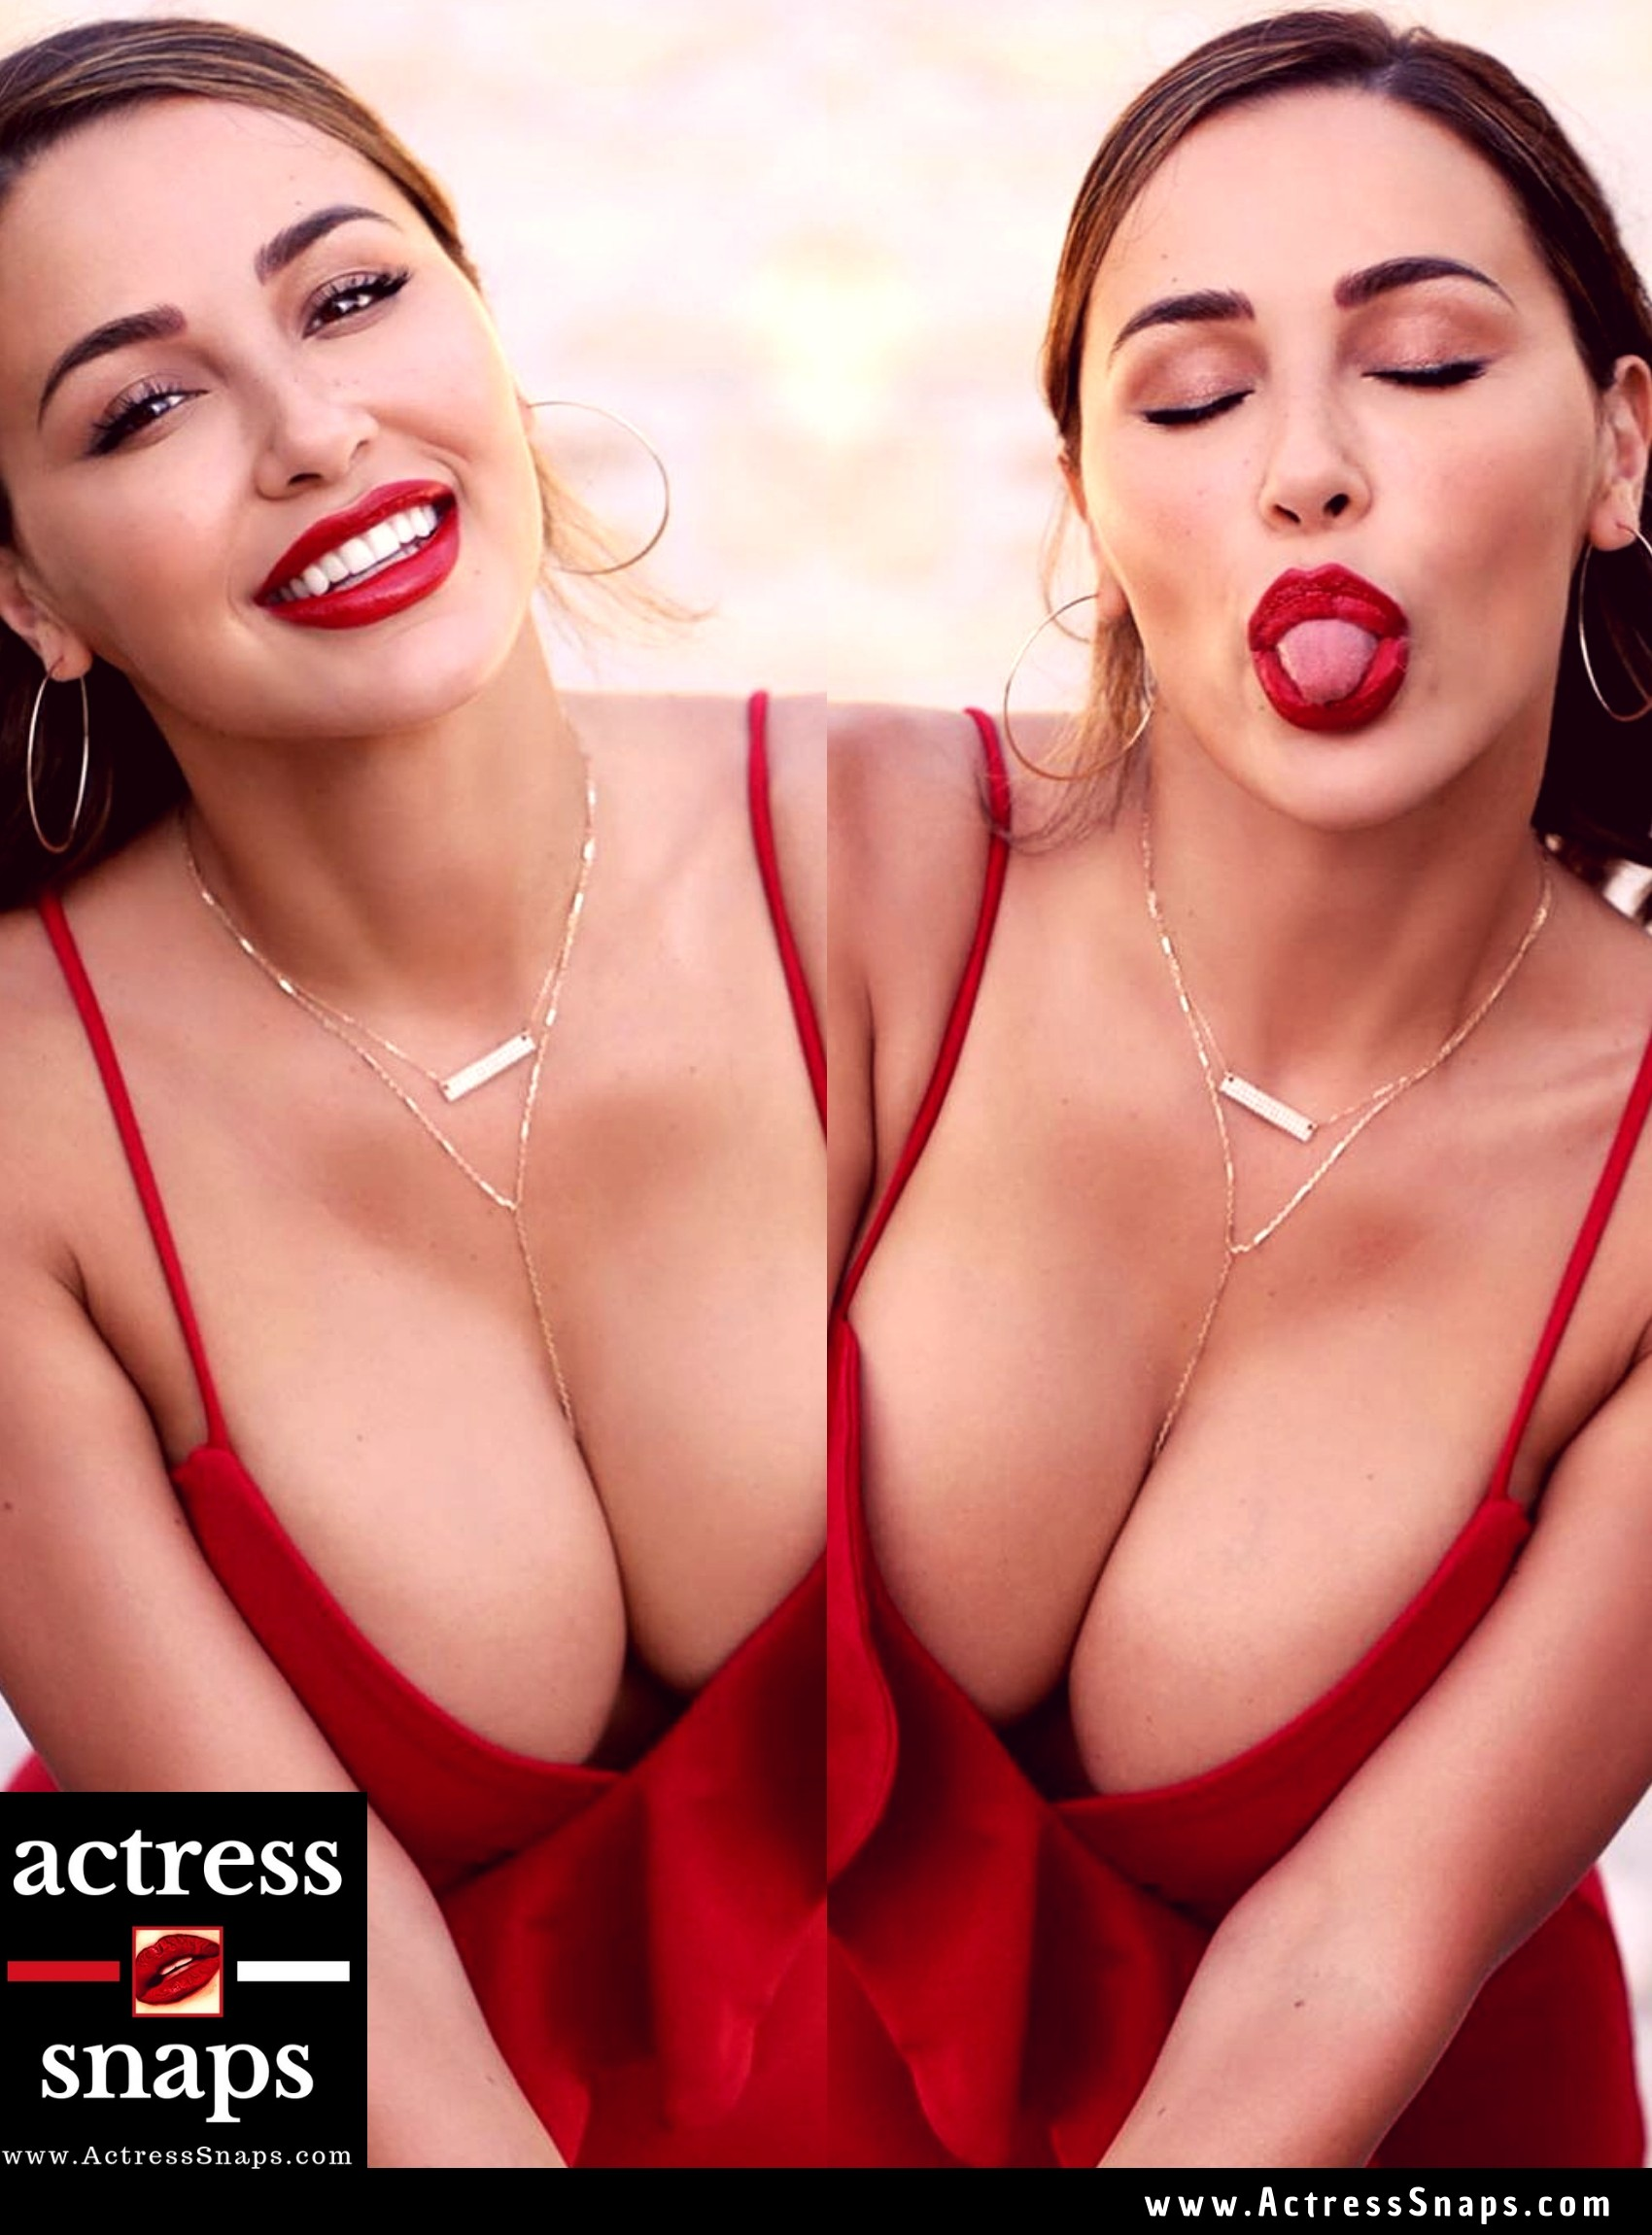 Sexy Ana Cheri in Red Dress - Sexy Actress Pictures | Hot Actress Pictures - ActressSnaps.com